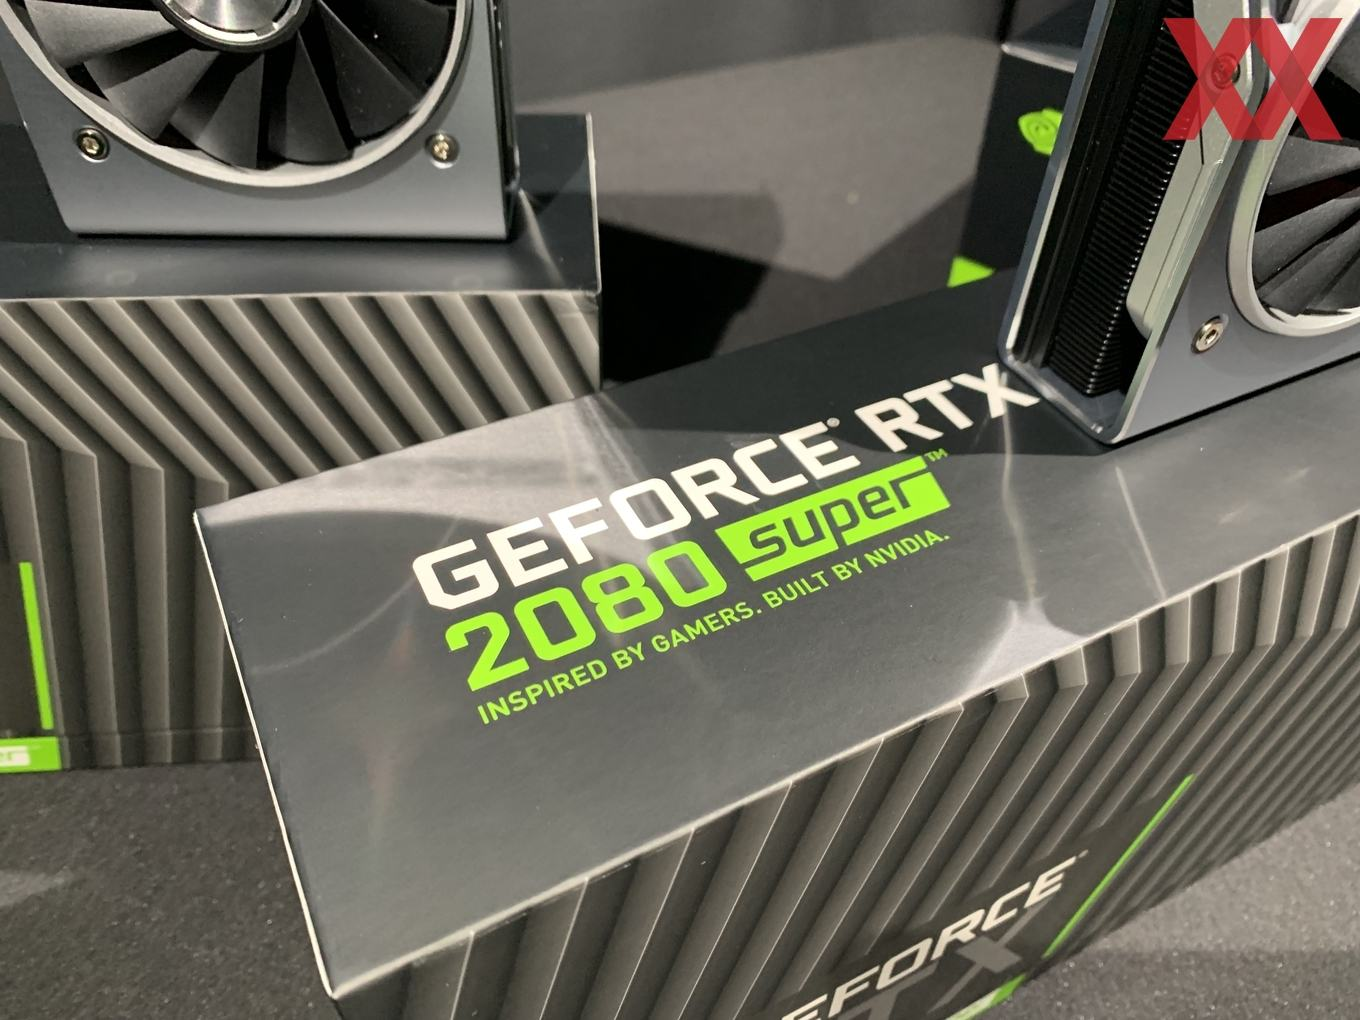 Тест и обзор: GeForce RTX 2060 Super и RTX 2070 Super - новые версии